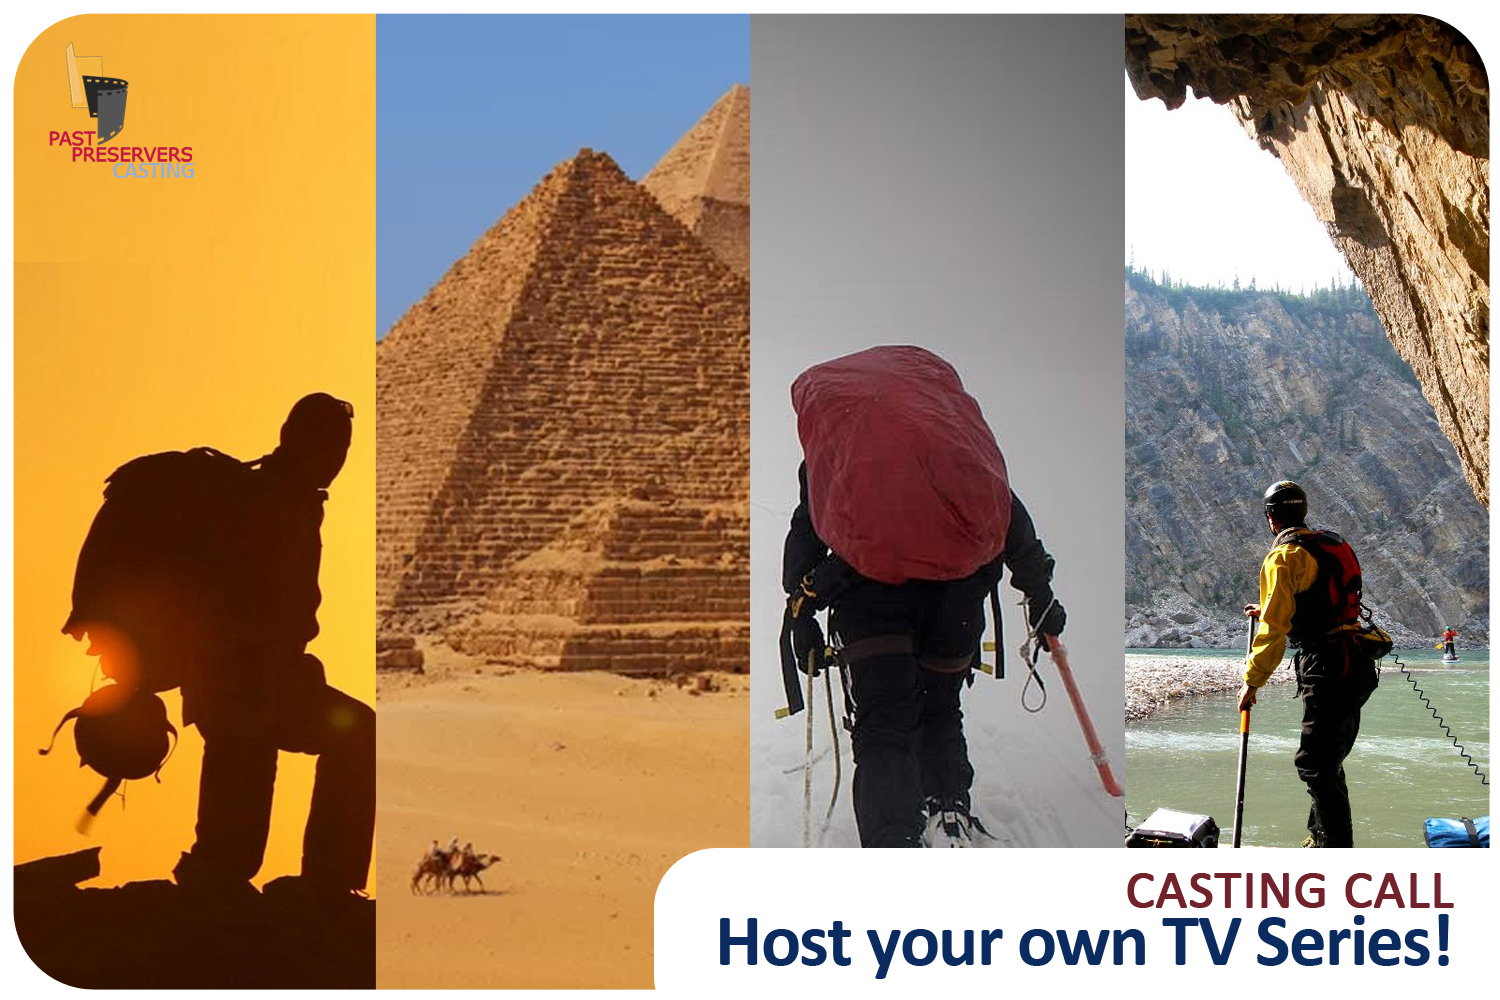 Host your own TV Series!